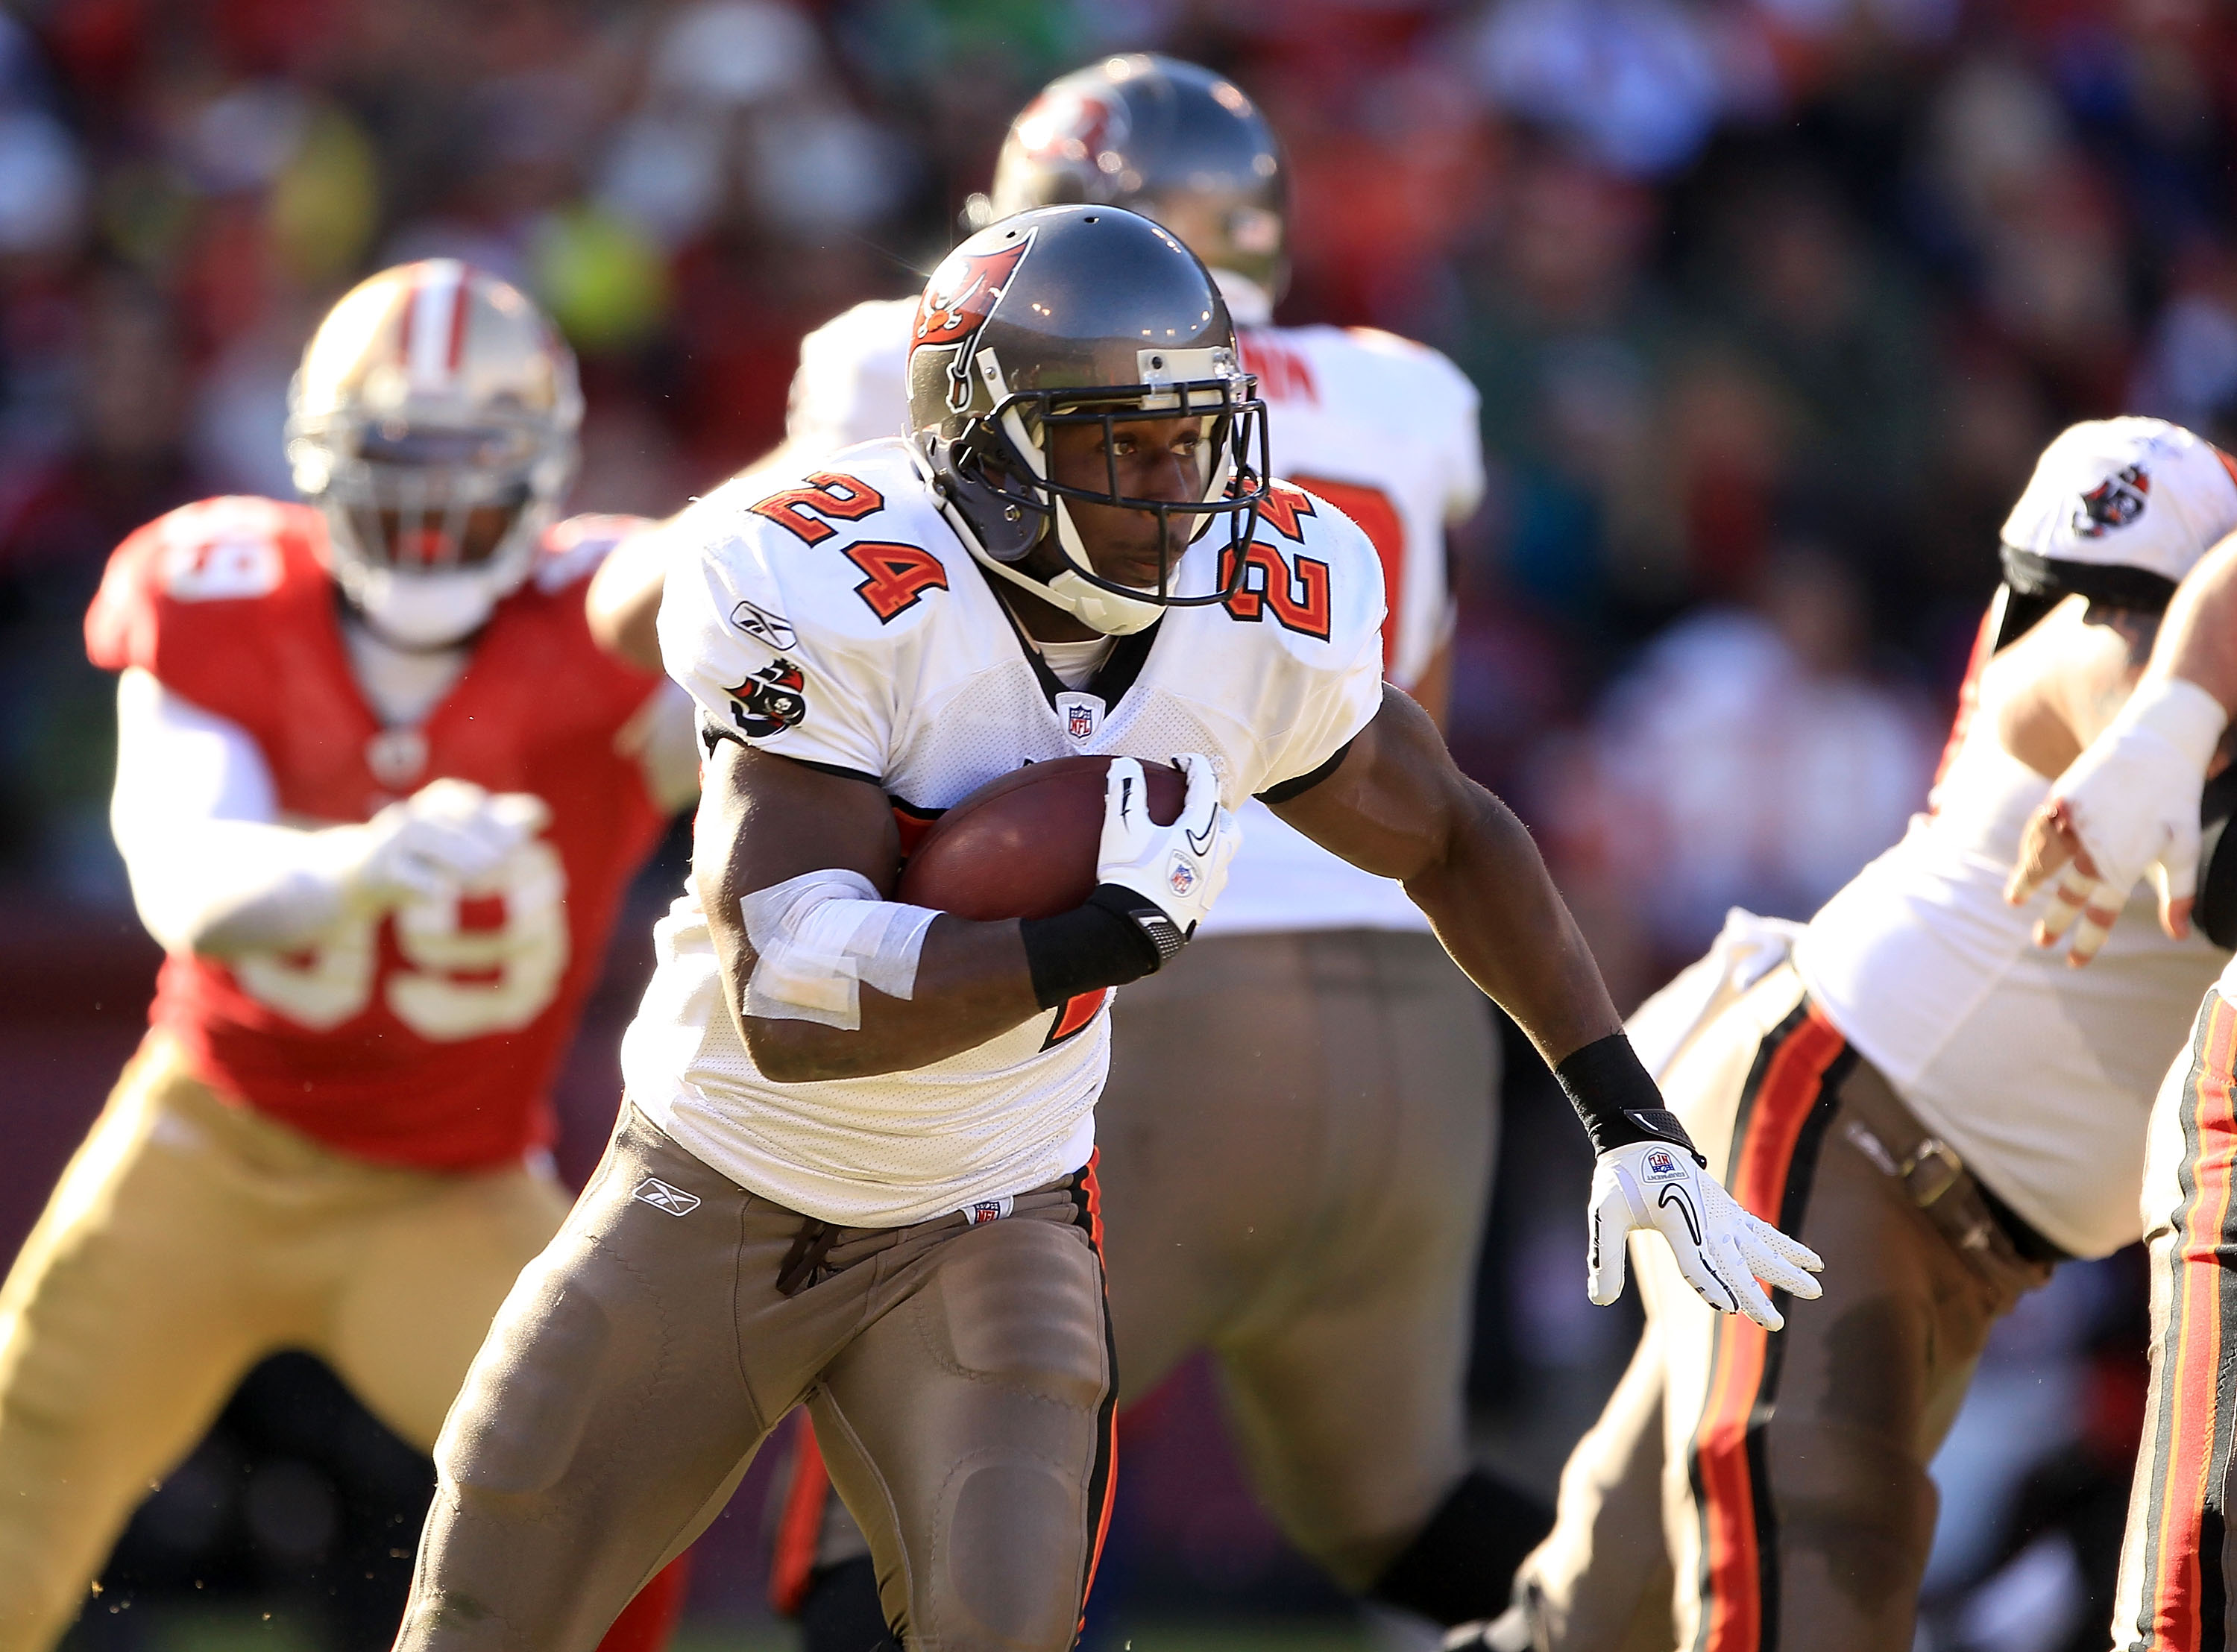 SAN FRANCISCO - NOVEMBER 21:  Carnell Williams #24 of the Tampa Bay Buccaneers in action against the San Francisco 49ers at Candlestick Park on November 21, 2010 in San Francisco, California.  (Photo by Ezra Shaw/Getty Images)